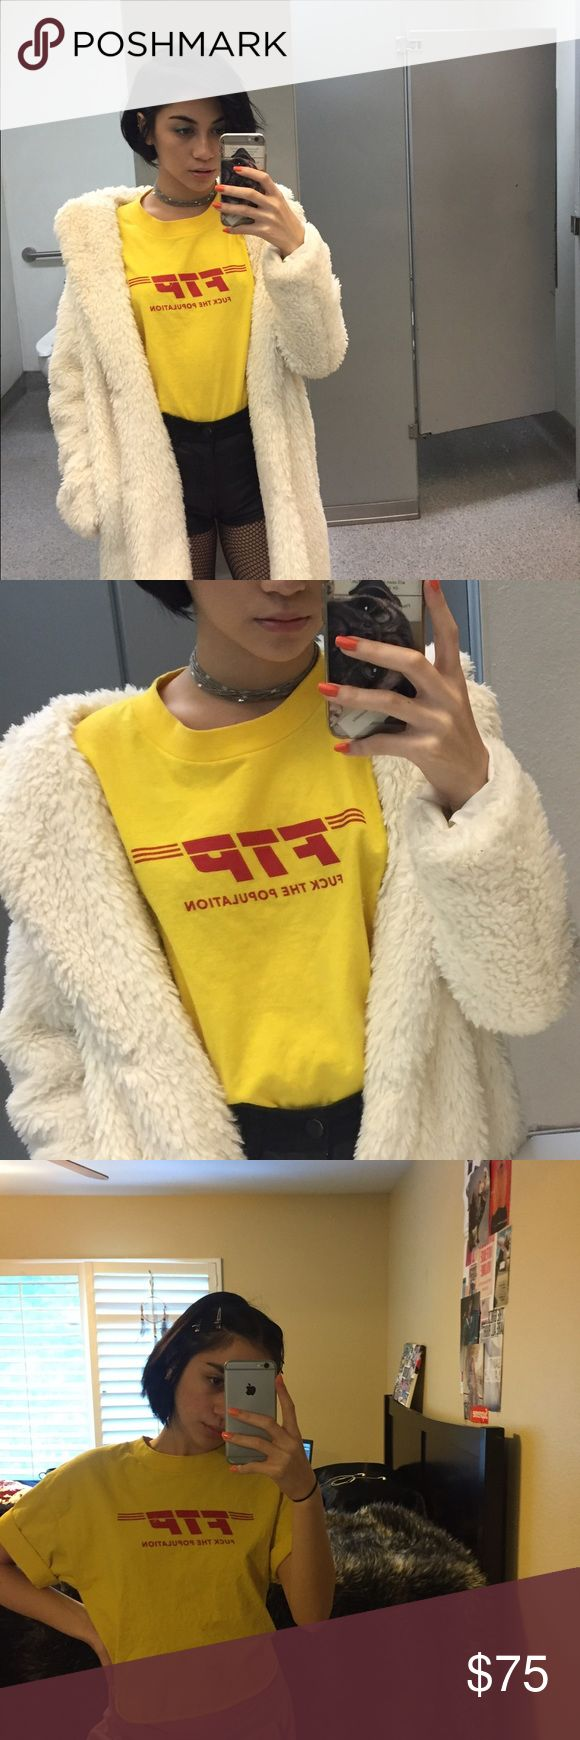 rare FTP DHL style tee yellow FTP tee w/ DHL style w/ a raw cut .. pretty rare shirt 🌹🌹price negotiable #ftp not #supreme #bape #thrasher #palace #offwhite #yeezy FTP Tops Tees - Short Sleeve